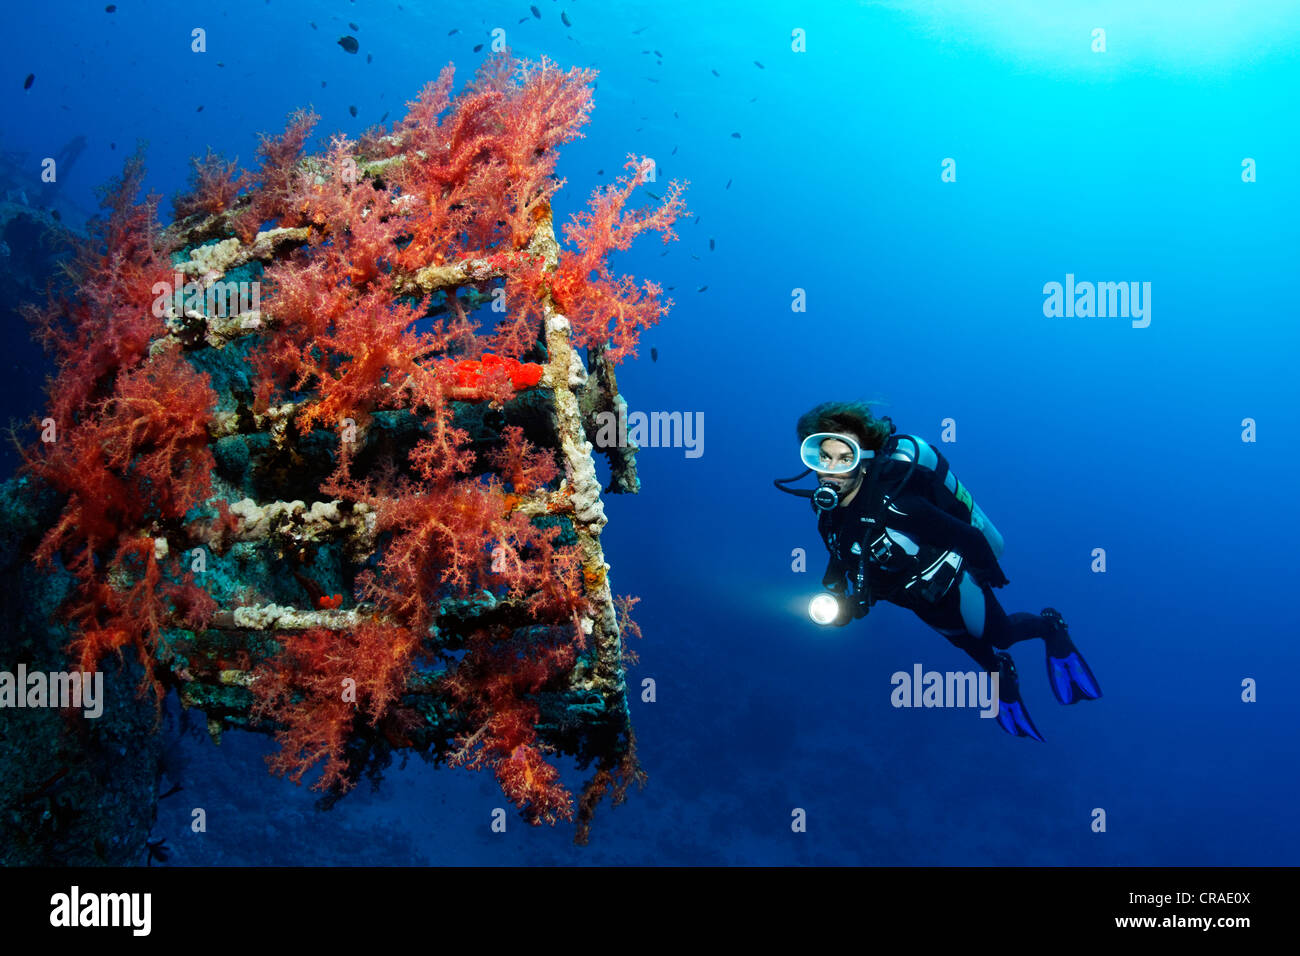 Diver at lookout overcrusted with Vibrant Broccoli coral (Dendronephthya klunzingeri), shipwreck, Cedar Pride, Red - Stock Image